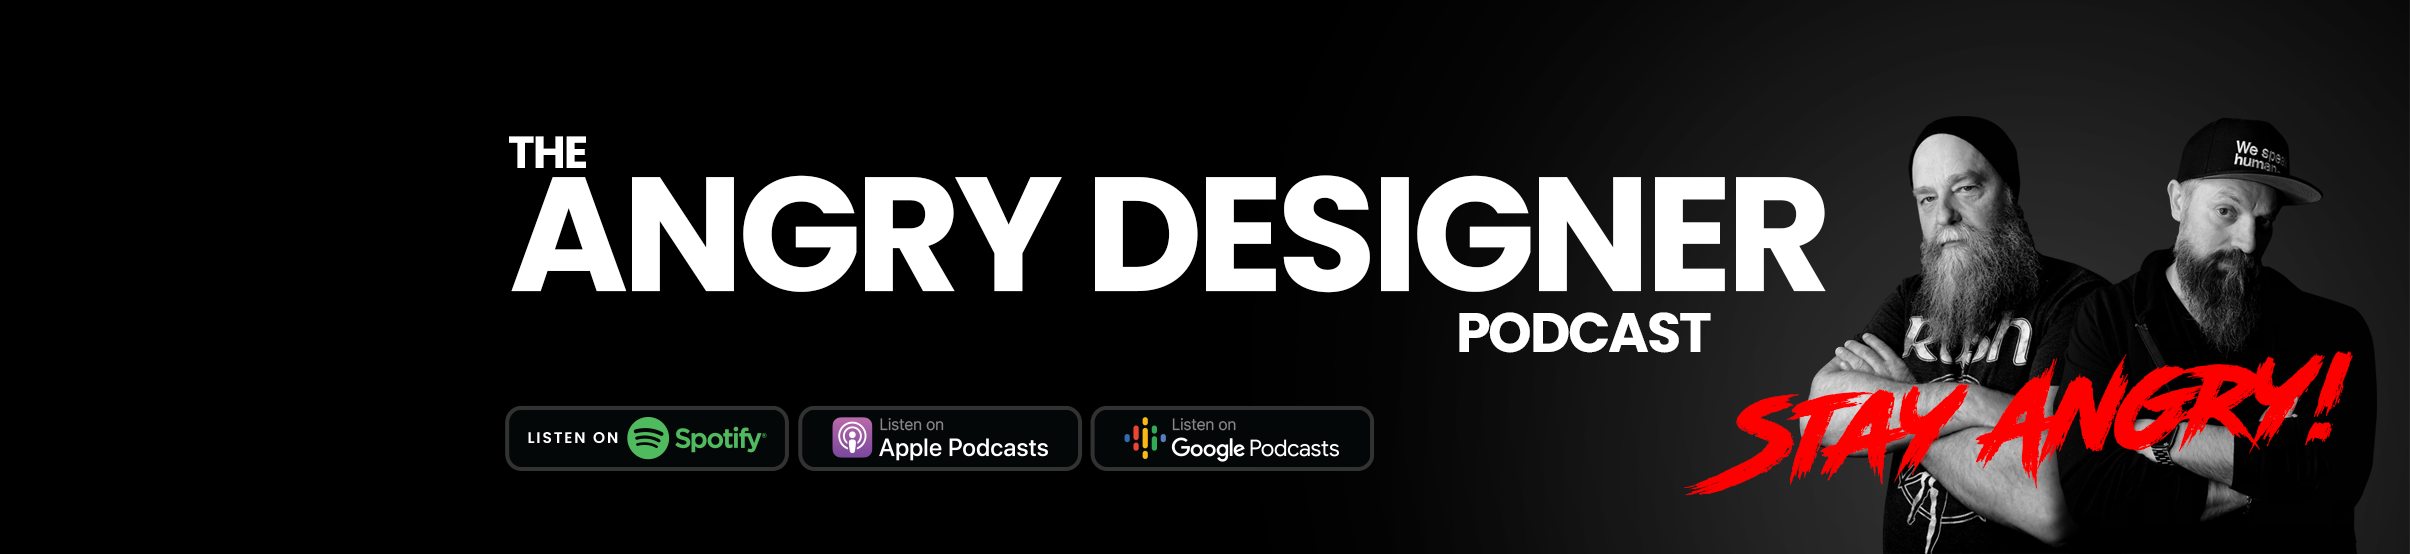 The Angry Designer